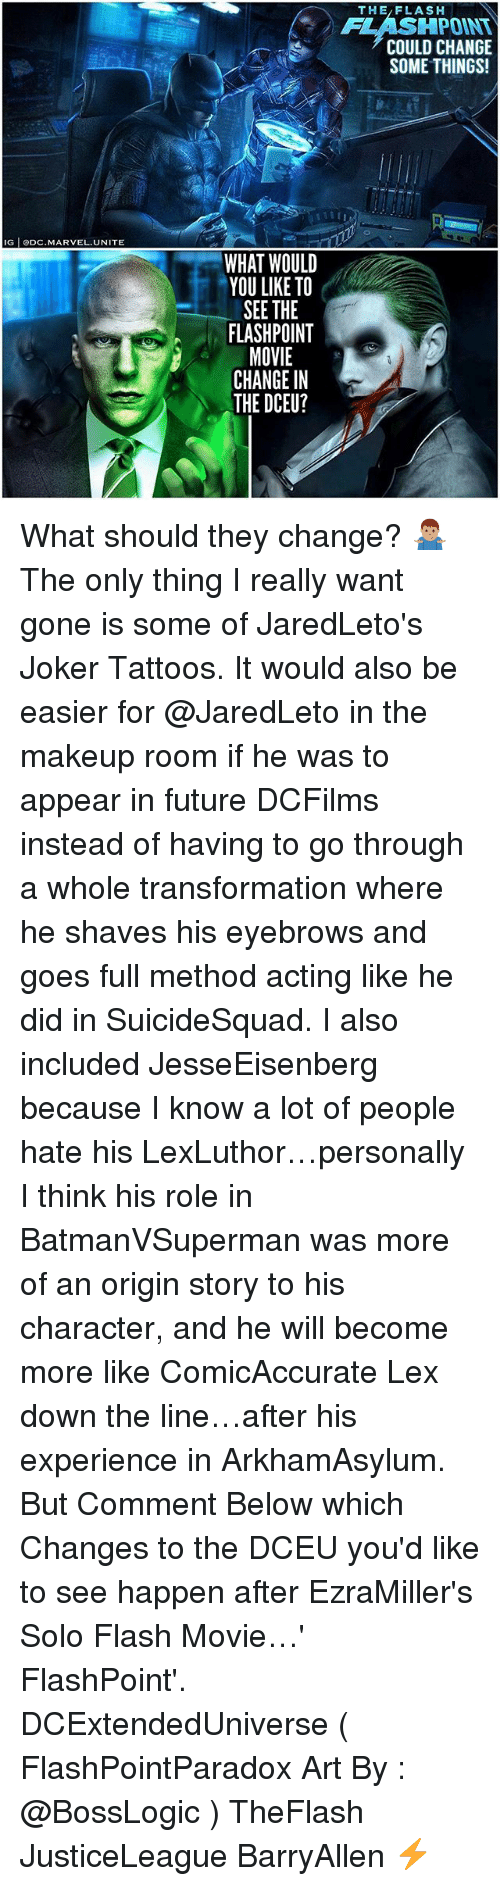 Future, Joker, and Makeup: THE/FLASH  FLASHPOINT  COULD CHANGE  SOME THINGS!  IG ODC.MARVEL.UNITE  WHAT WOULD  YOU LIKE TO  SEE THE  FLASHPOINT  MOVIE  CHANGE IN  THE DCEU? What should they change? 🤷🏽♂️ The only thing I really want gone is some of JaredLeto's Joker Tattoos. It would also be easier for @JaredLeto in the makeup room if he was to appear in future DCFilms instead of having to go through a whole transformation where he shaves his eyebrows and goes full method acting like he did in SuicideSquad. I also included JesseEisenberg because I know a lot of people hate his LexLuthor…personally I think his role in BatmanVSuperman was more of an origin story to his character, and he will become more like ComicAccurate Lex down the line…after his experience in ArkhamAsylum. But Comment Below which Changes to the DCEU you'd like to see happen after EzraMiller's Solo Flash Movie…' FlashPoint'. DCExtendedUniverse ( FlashPointParadox Art By : @BossLogic ) TheFlash JusticeLeague BarryAllen ⚡️